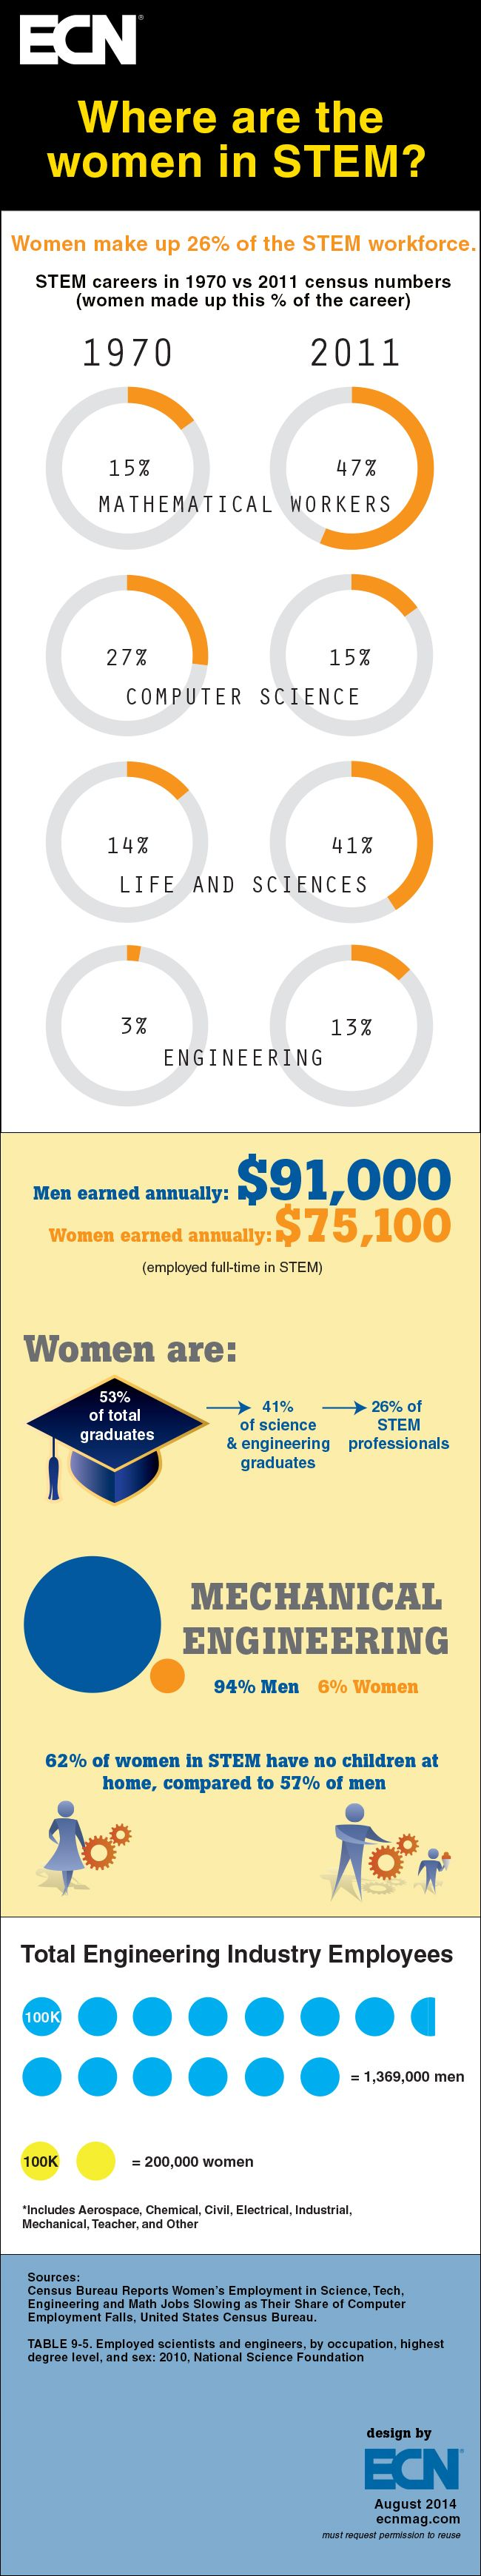 Infographic: Where are all the women in STEM?